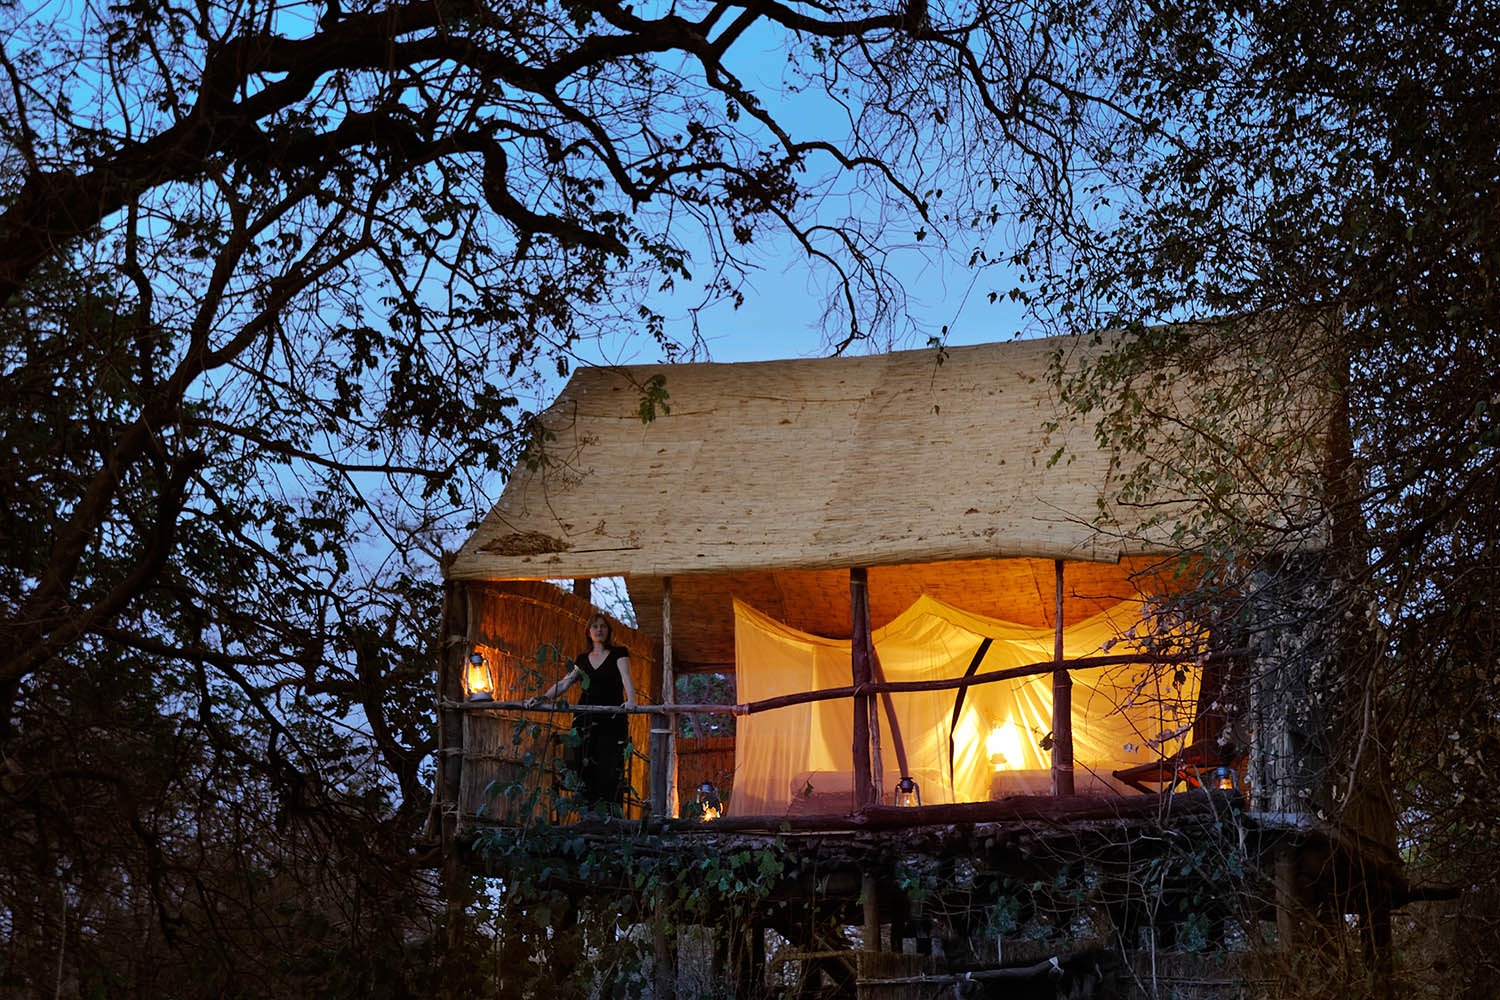 chikoko trails crocodile-camp-zambia-in-style-tours-safari-packages-lodges-travel-explore-south-luangwa-national-park-evening